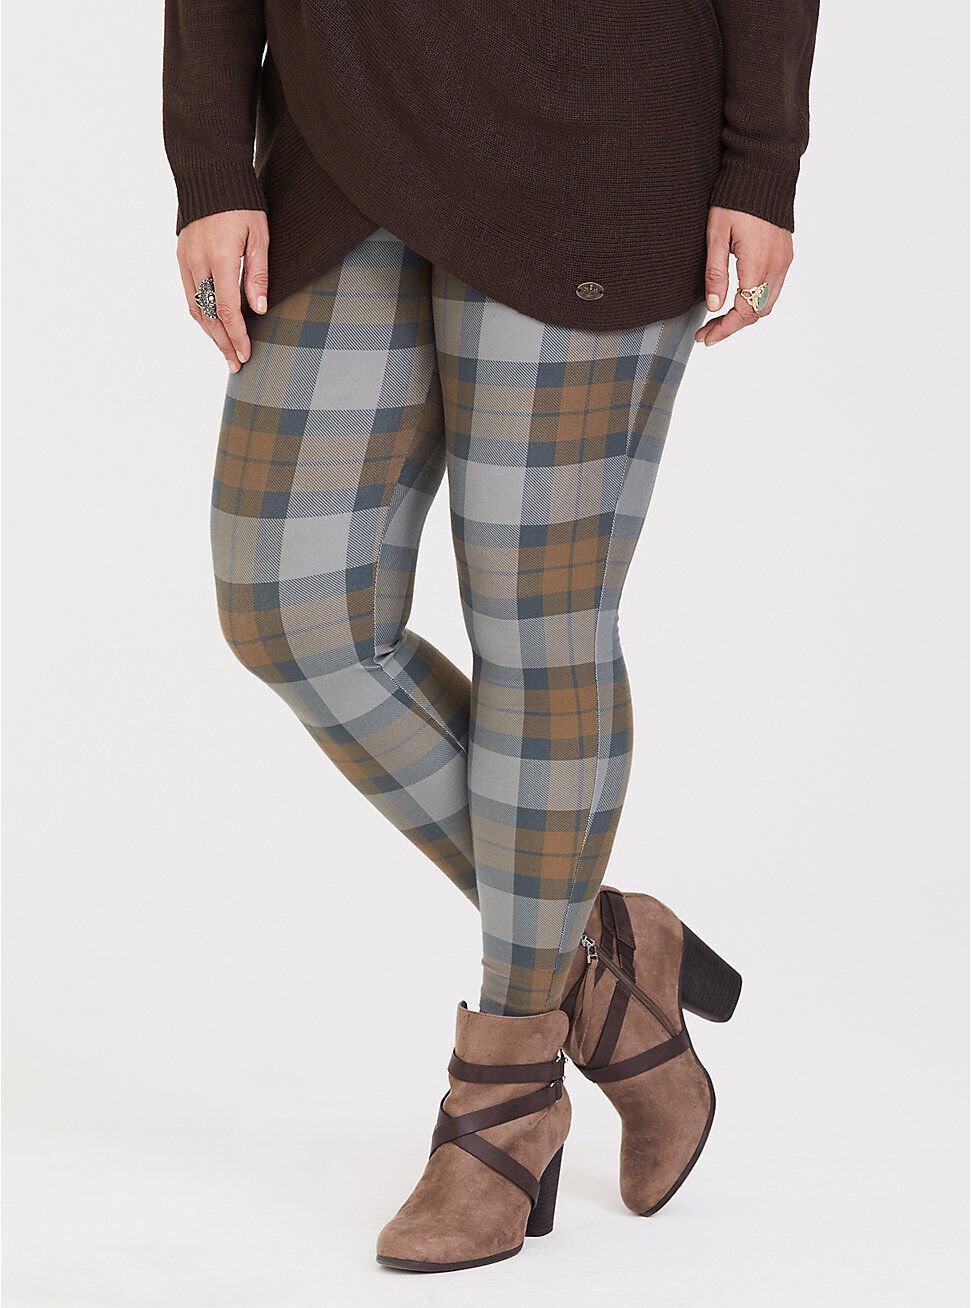 Womens Torrid Outlander Plaid Tartan Leggings Size 4 26 28 4X large NWT